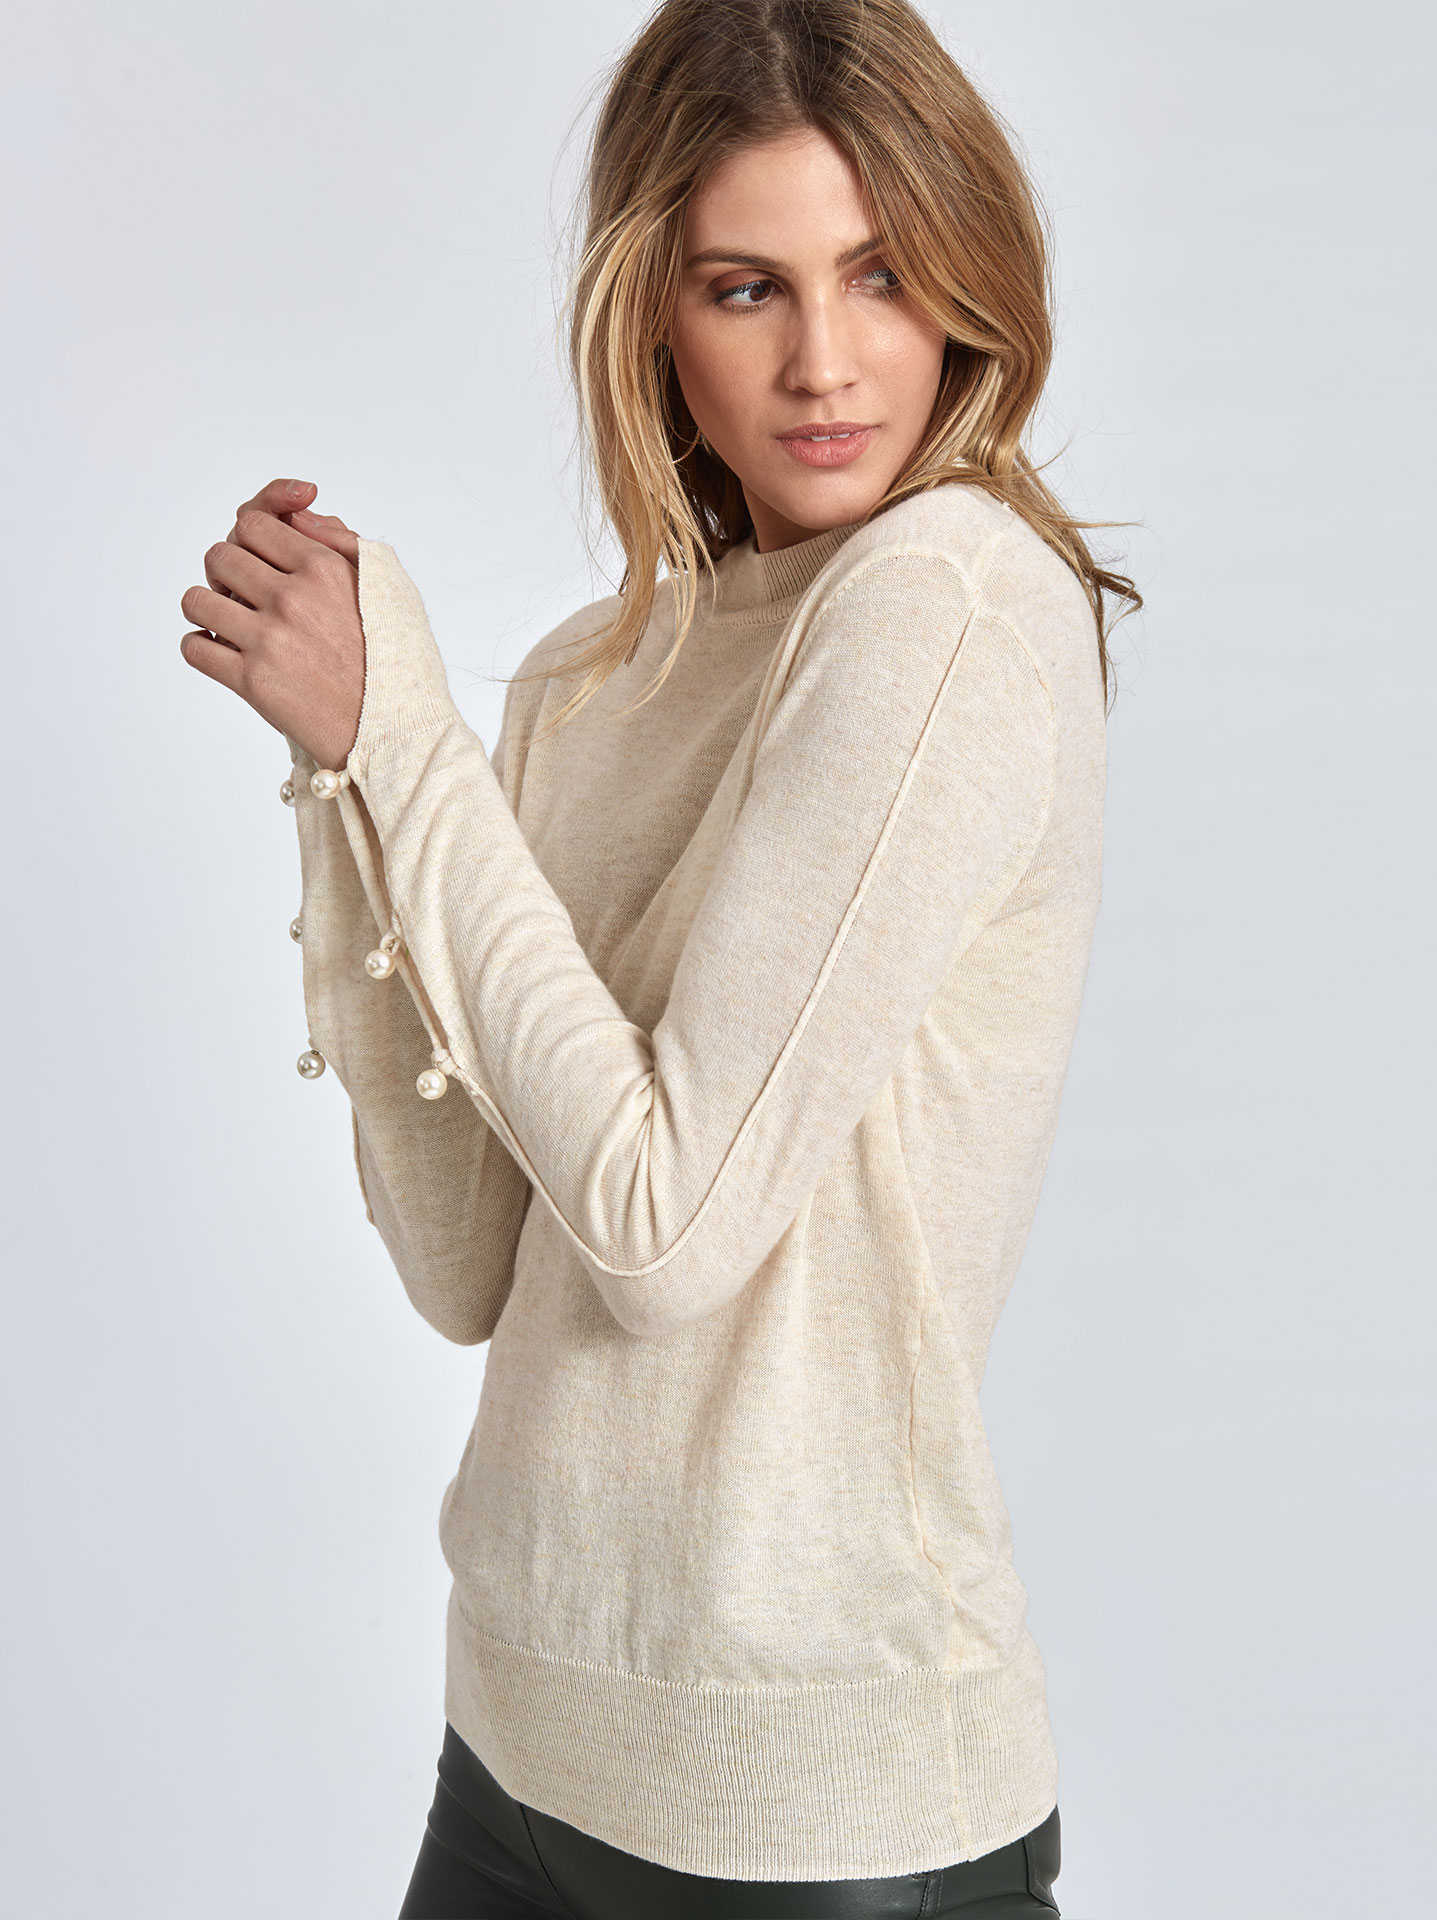 Fine-knit sweater with pearls on sleeves in off white 1ddd05322